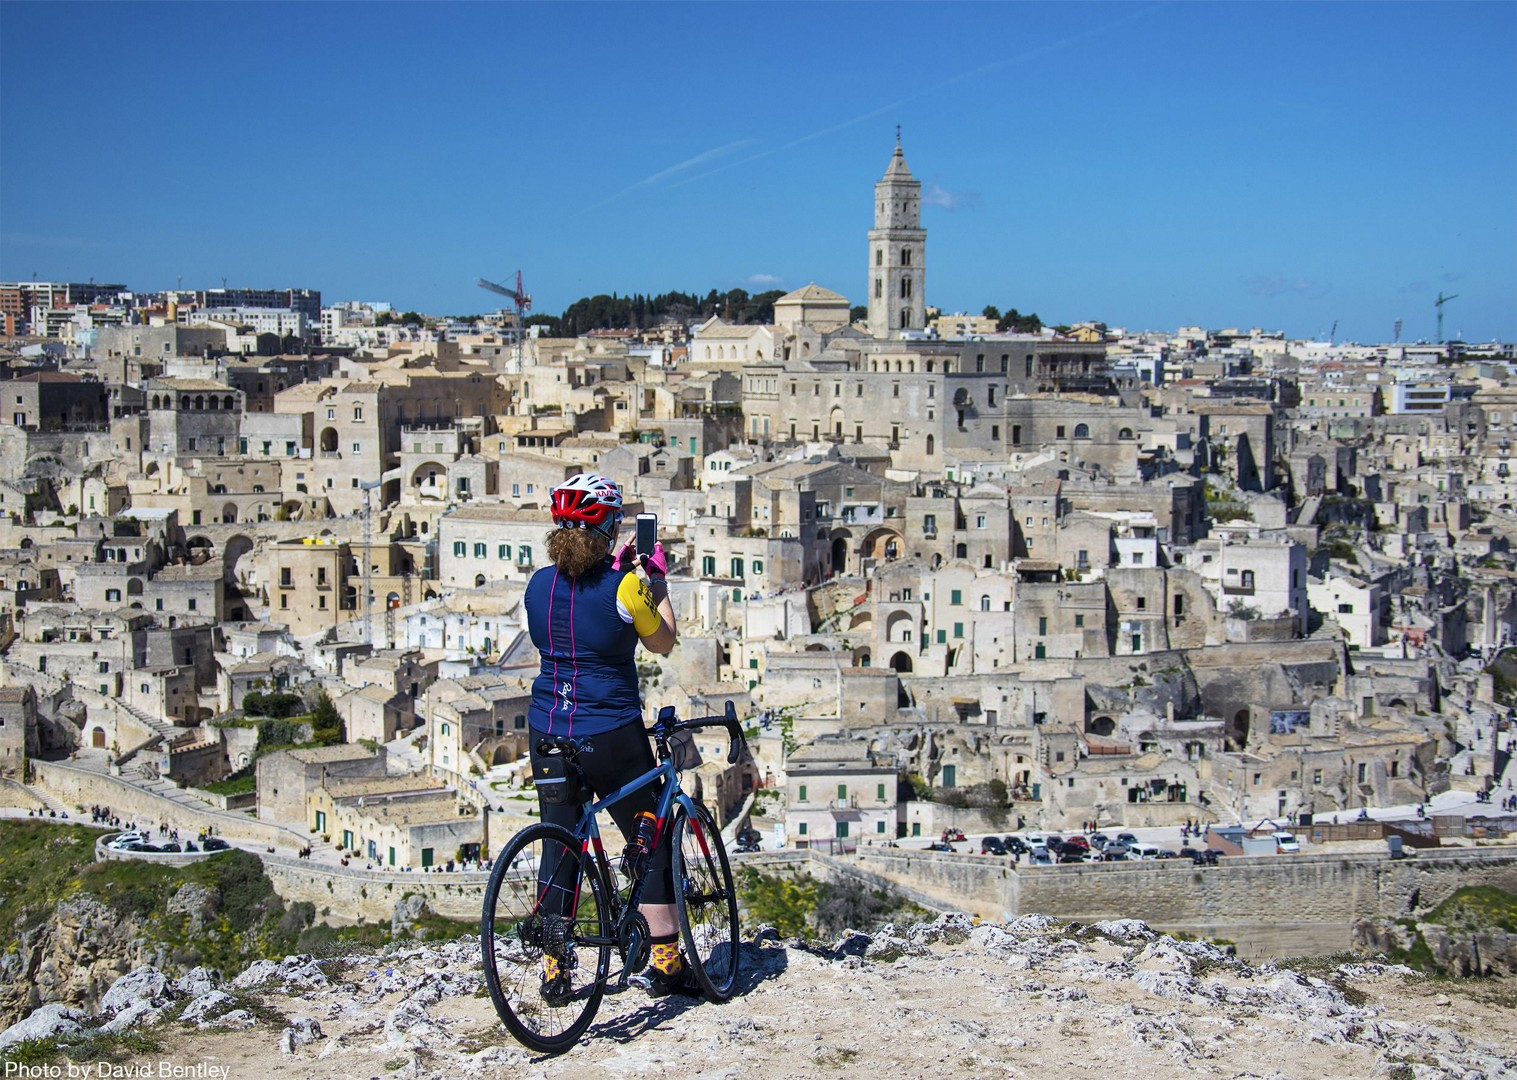 puglia2.jpg - Italy - Puglia - The Heel of Italy - Self-Guided Road Cycling Holiday - Road Cycling